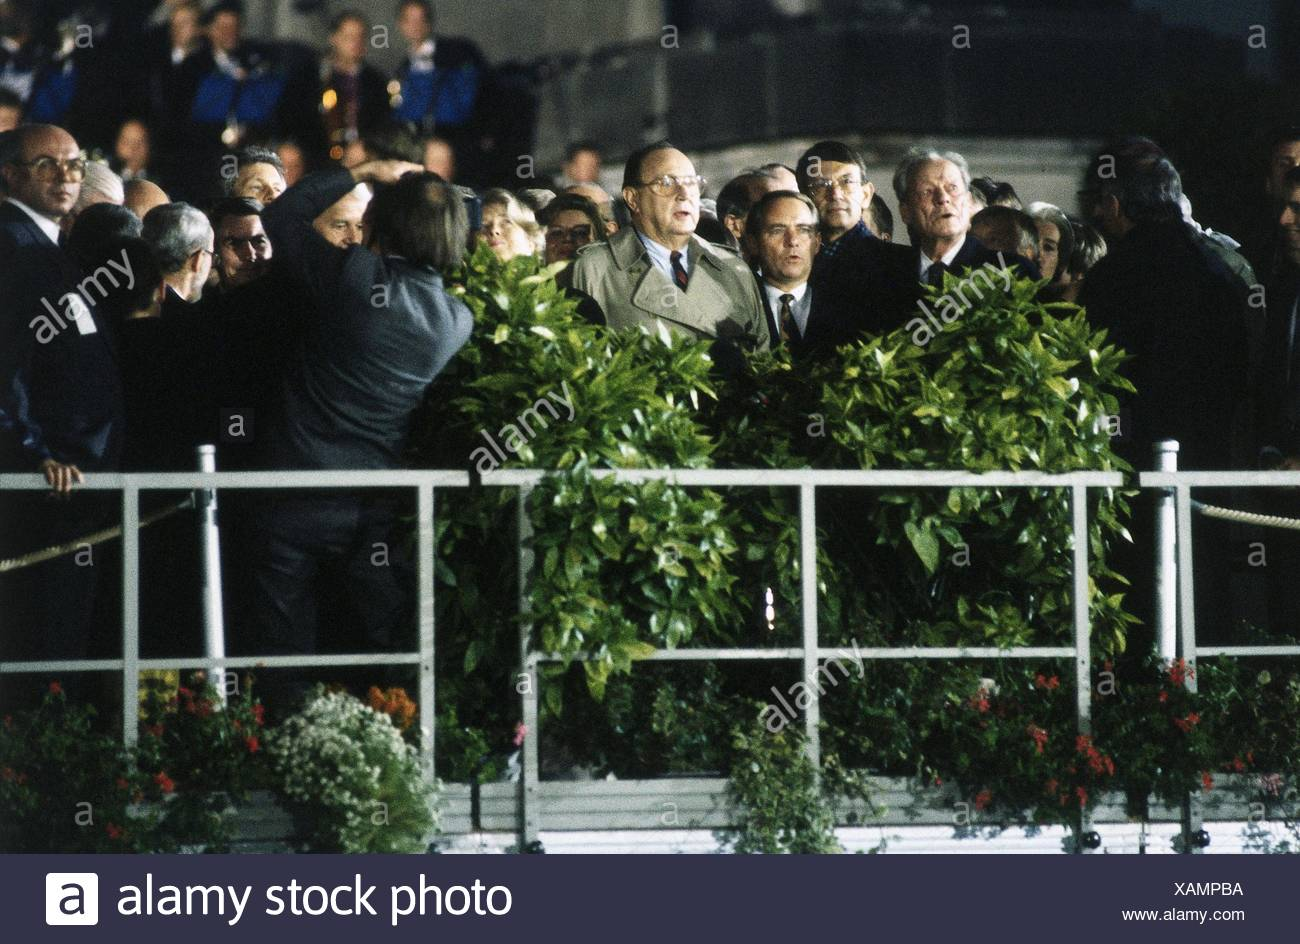 geography / travel, Germany, German reunification, politicians on stage, during ceremony of the 'German Unity', outside of Reichstag, Berlin, 2.10.1990, Additional-Rights-Clearences-NA - Stock Image